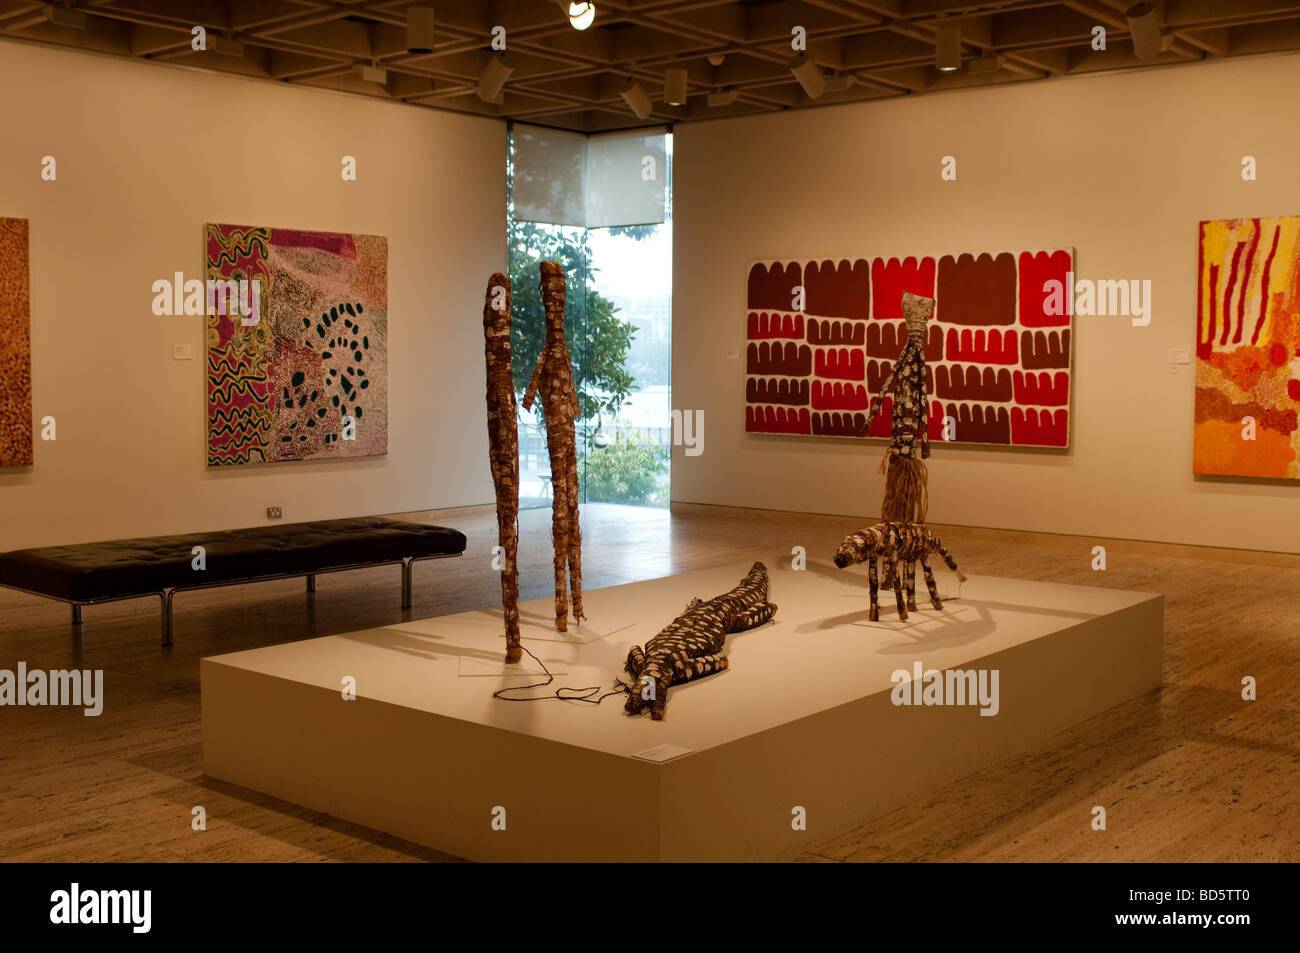 Aboriginal and Torres Strait Islanders gallery in Art Gallery of 'New South Wales' Sydney NSW Australia - Stock Image